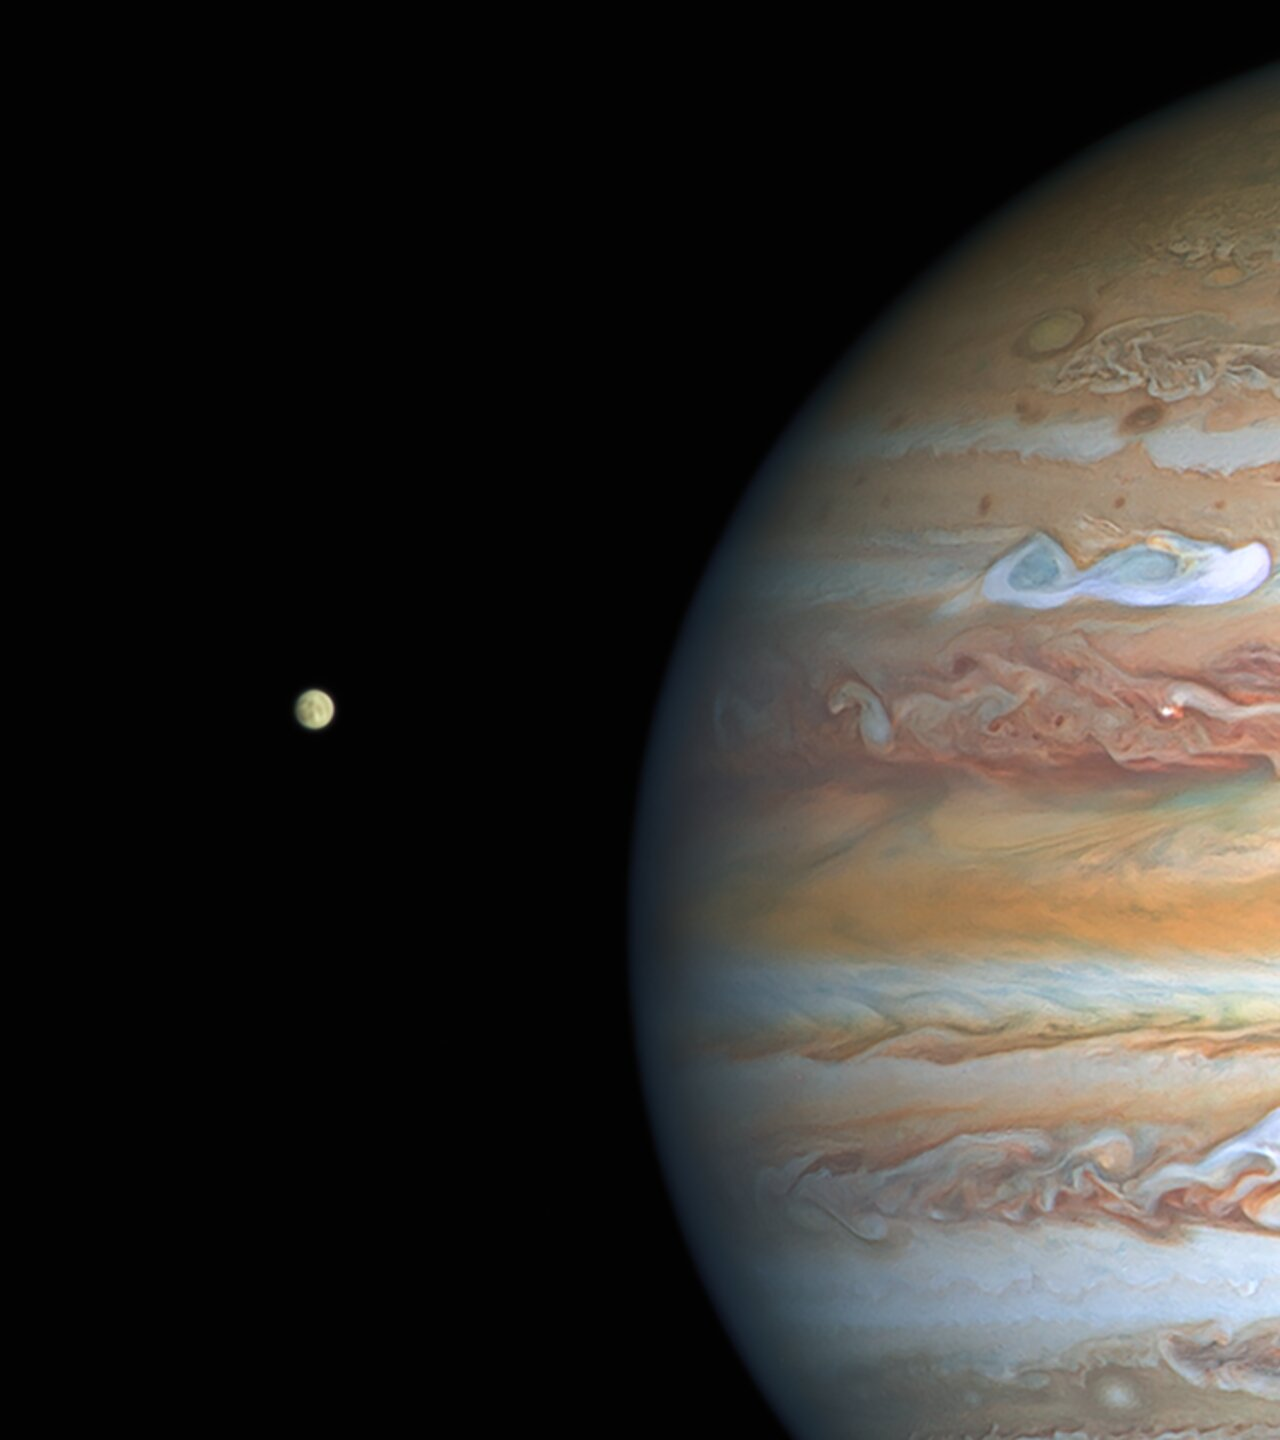 Science Release: Hubble Finds Evidence of Persistent Water Vapour Atmosphere on Europa